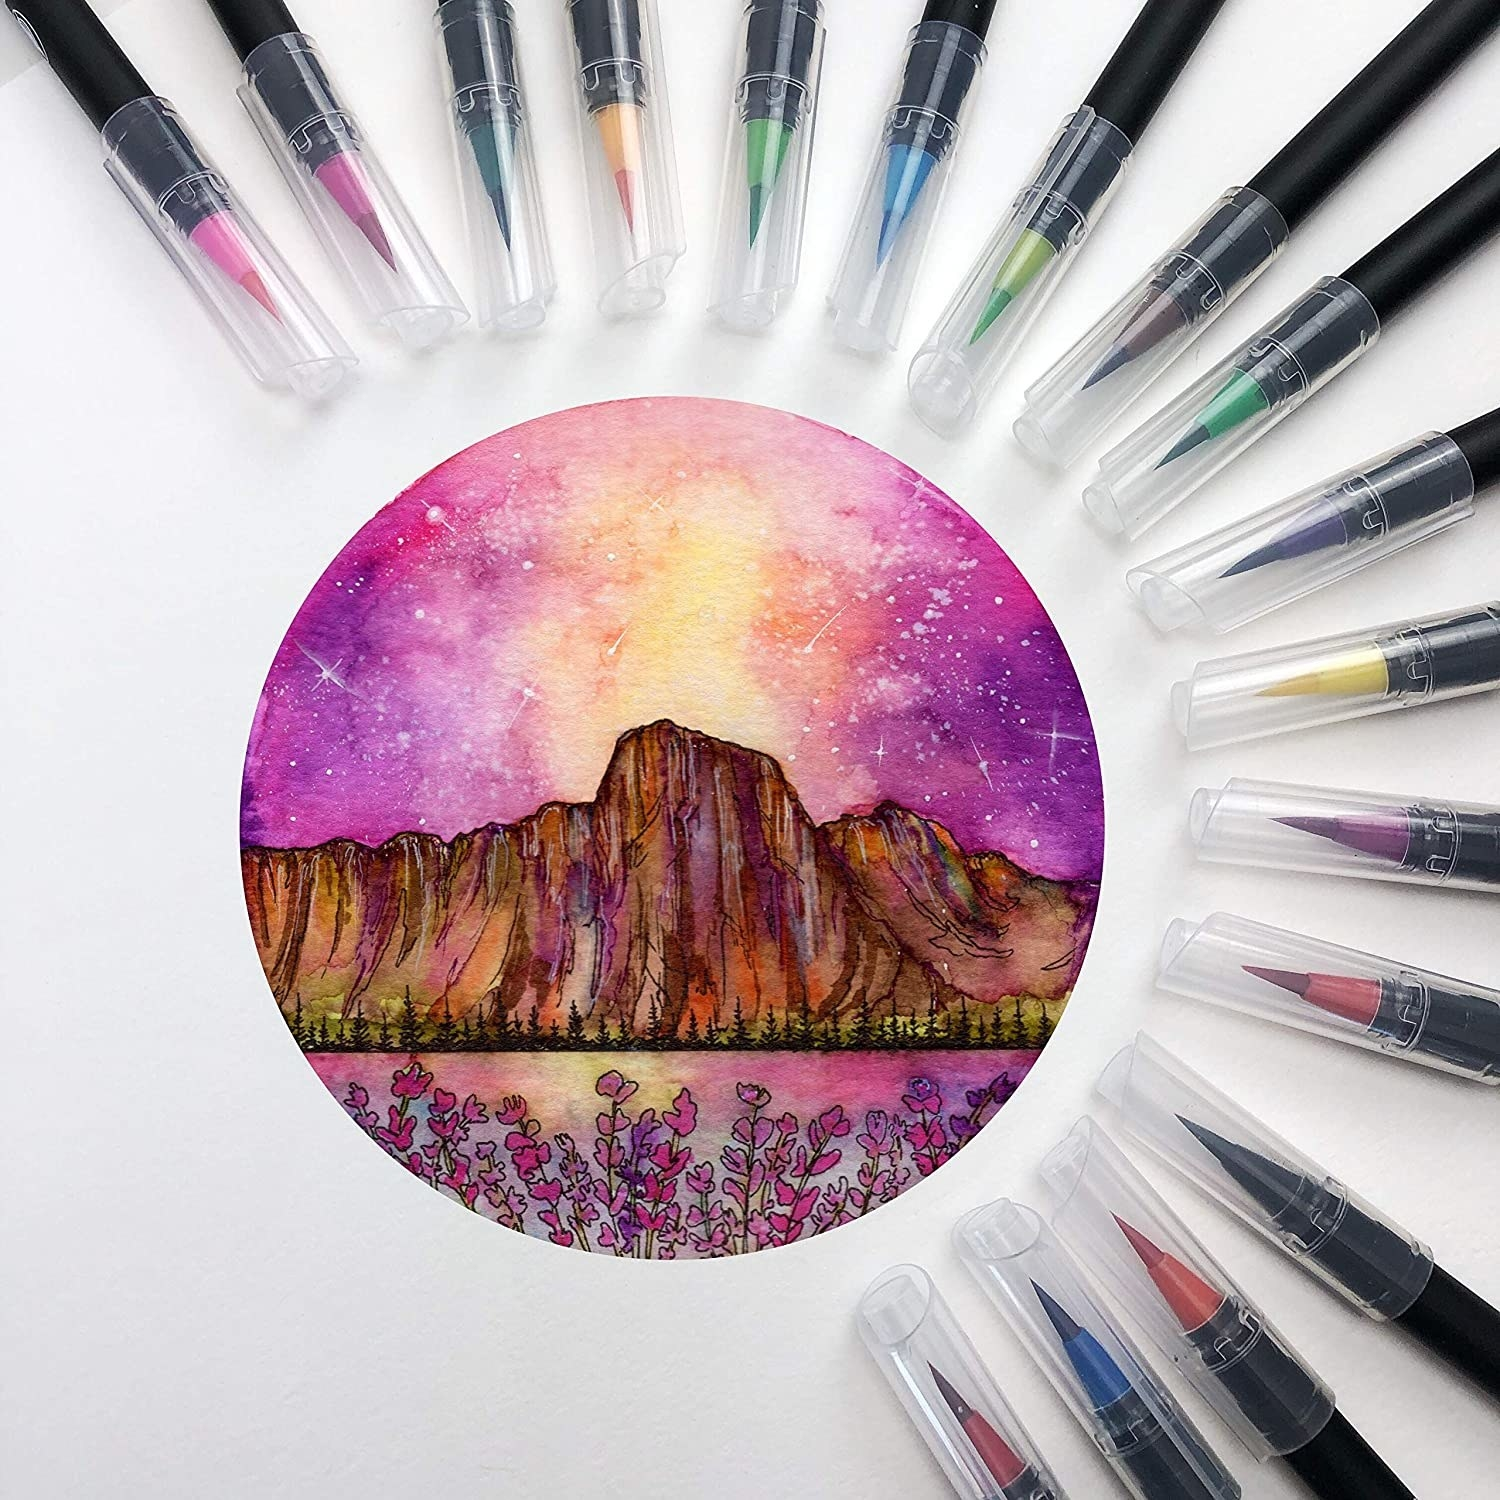 Twenty watercolour brush pens placed around a small drawing of a sun setting behind a mountain